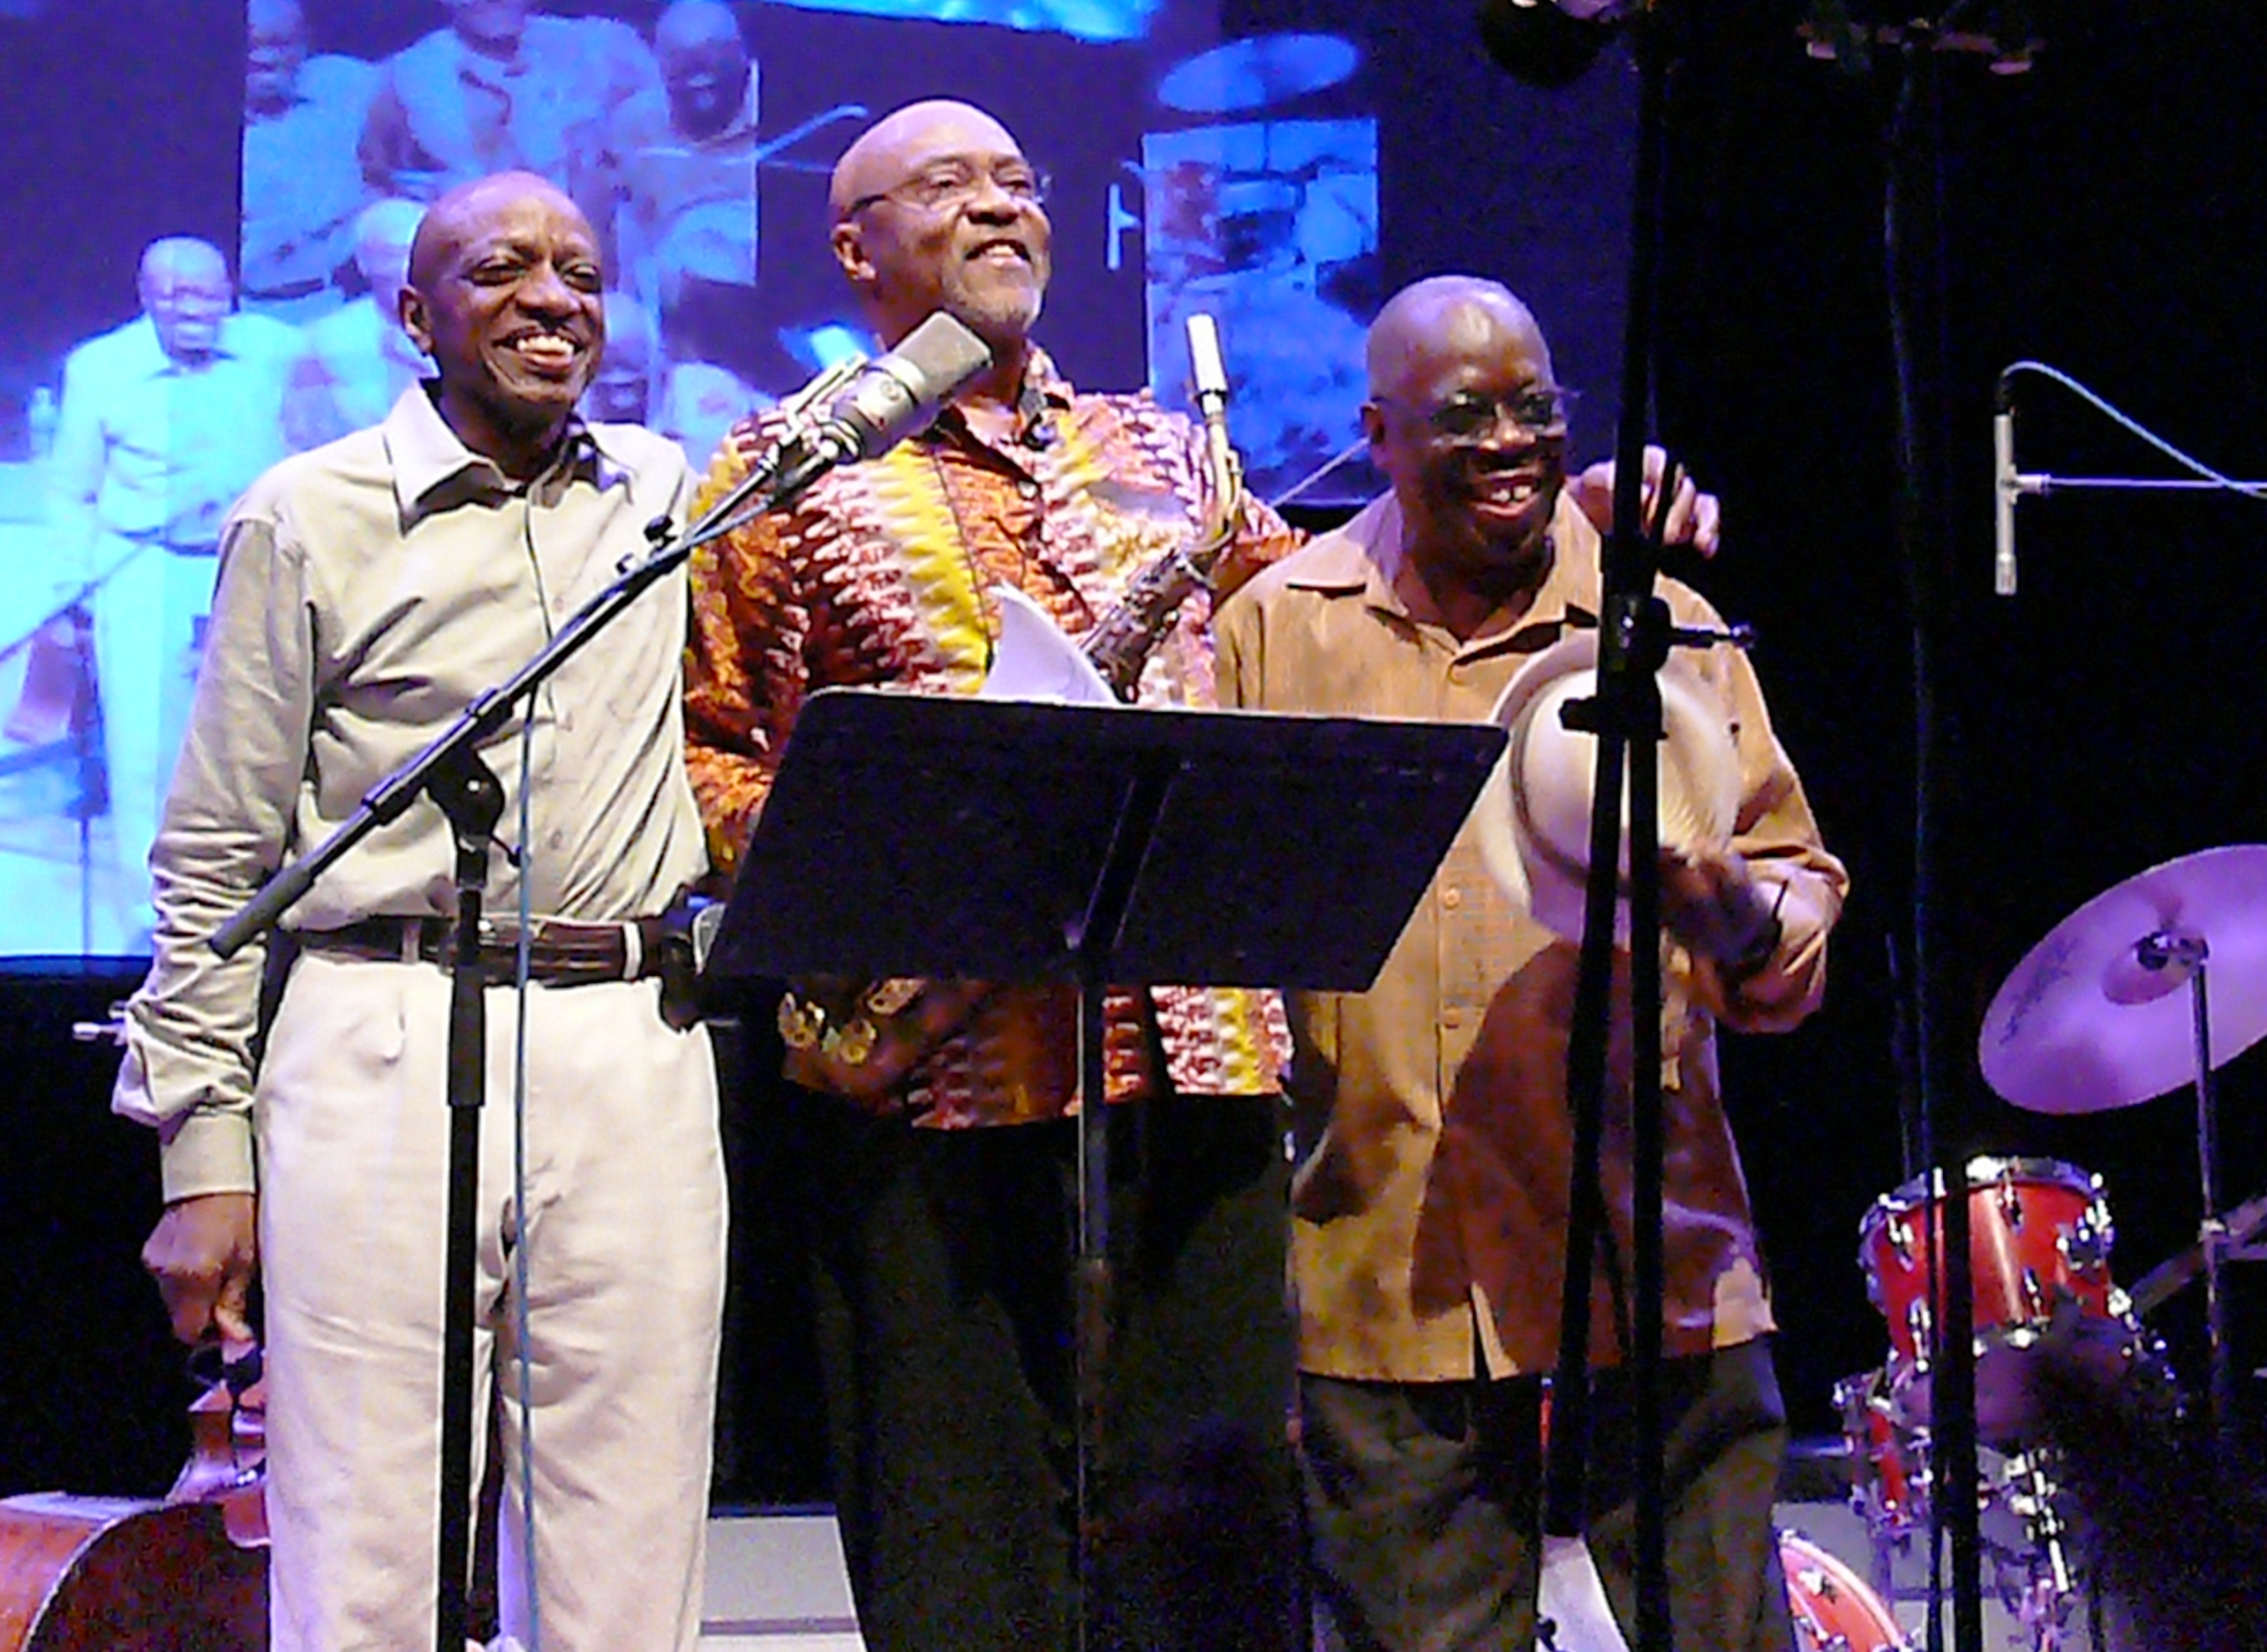 Trio 3 at the Vision Festival in June 2012